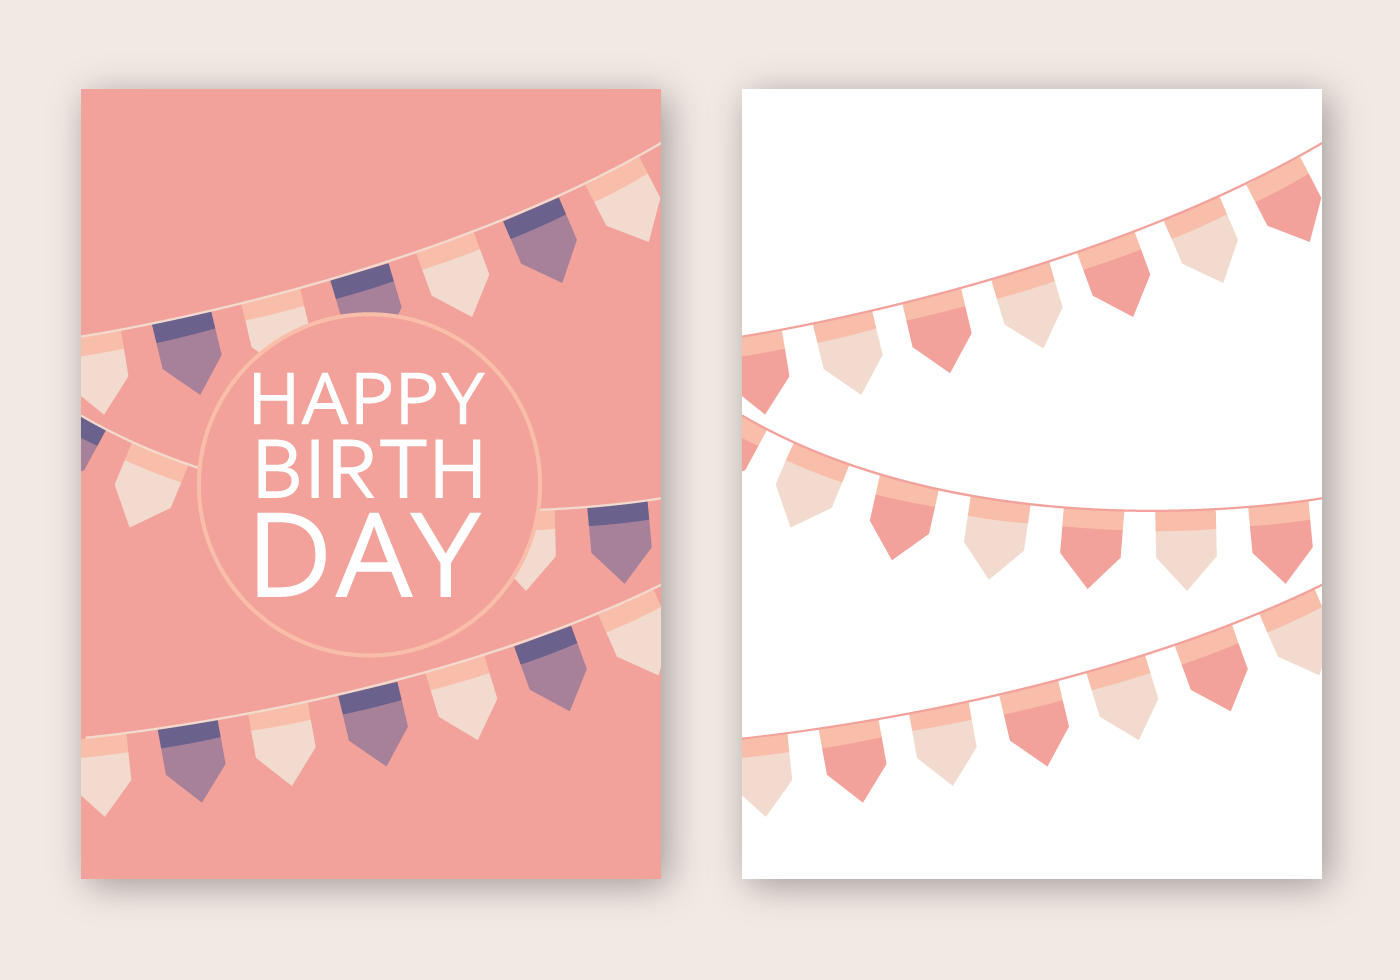 Free happy birthday card vector download free vector art - Birthday cards images free download ...